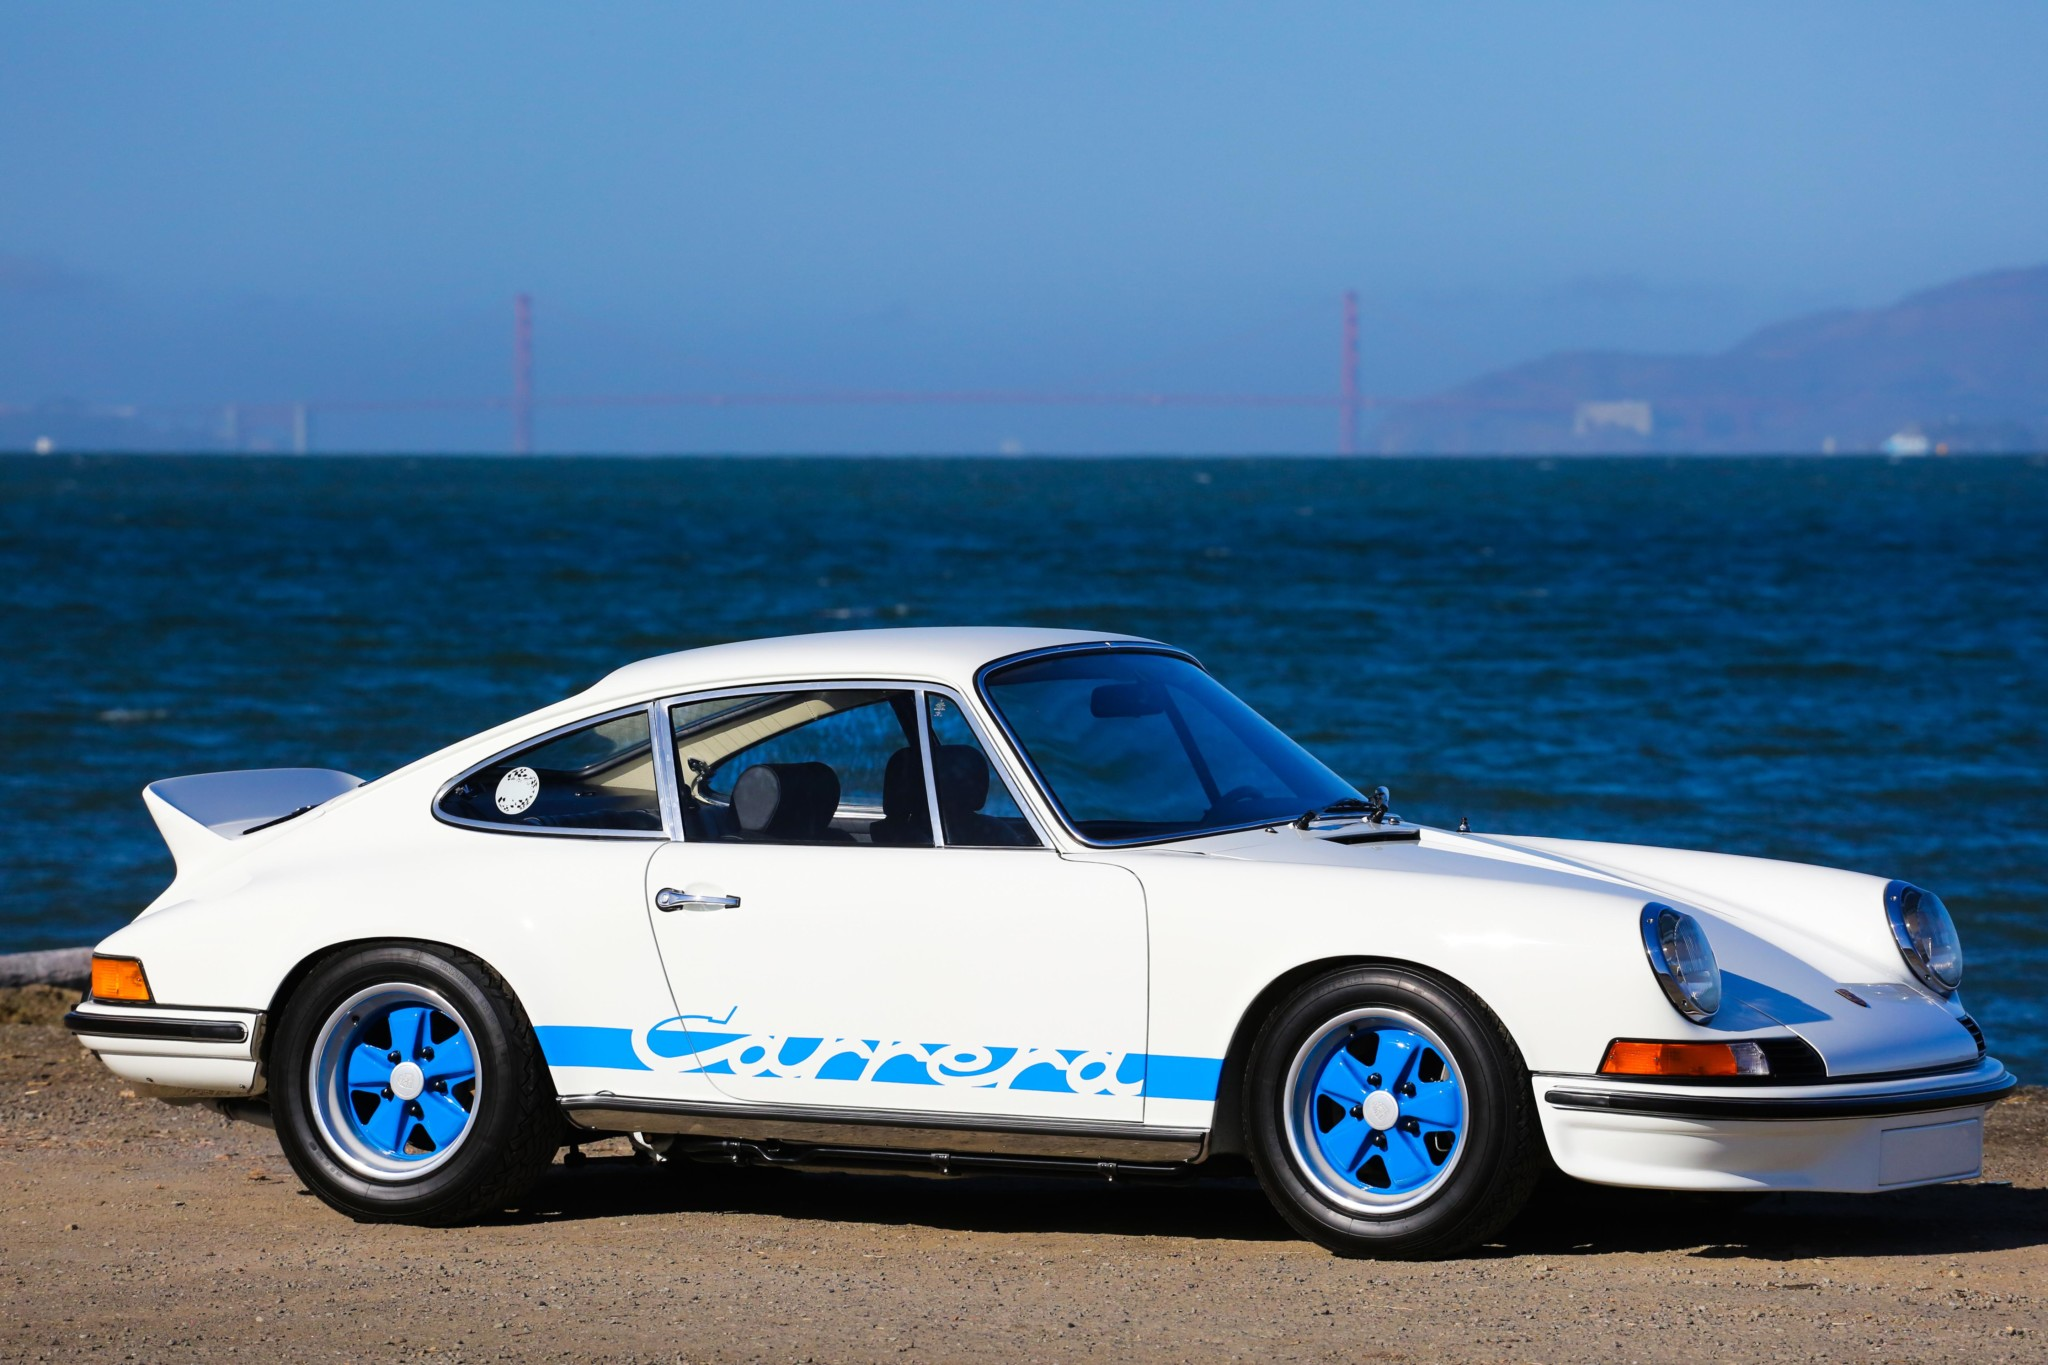 Porsche-911-Carrera-RS-2.7-1973-for-sale-22